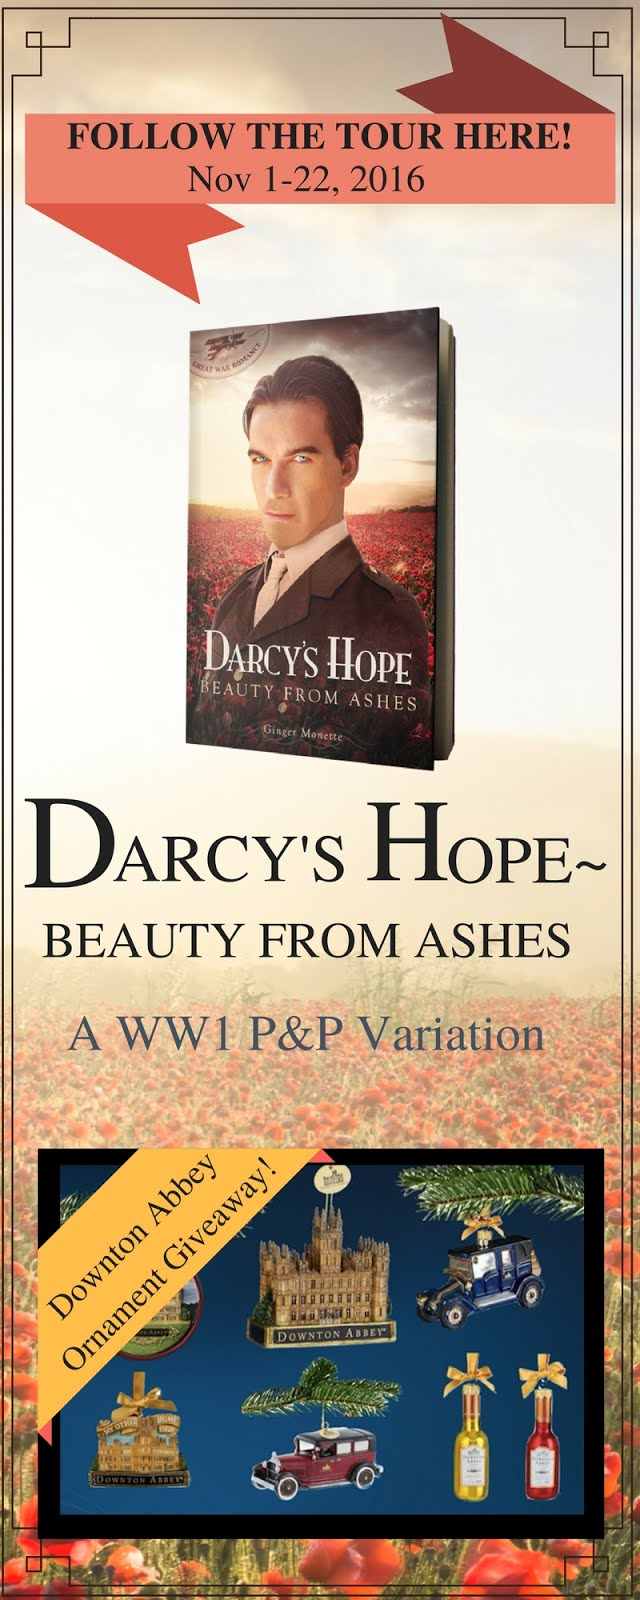 Darcy's Hope Blog Tour